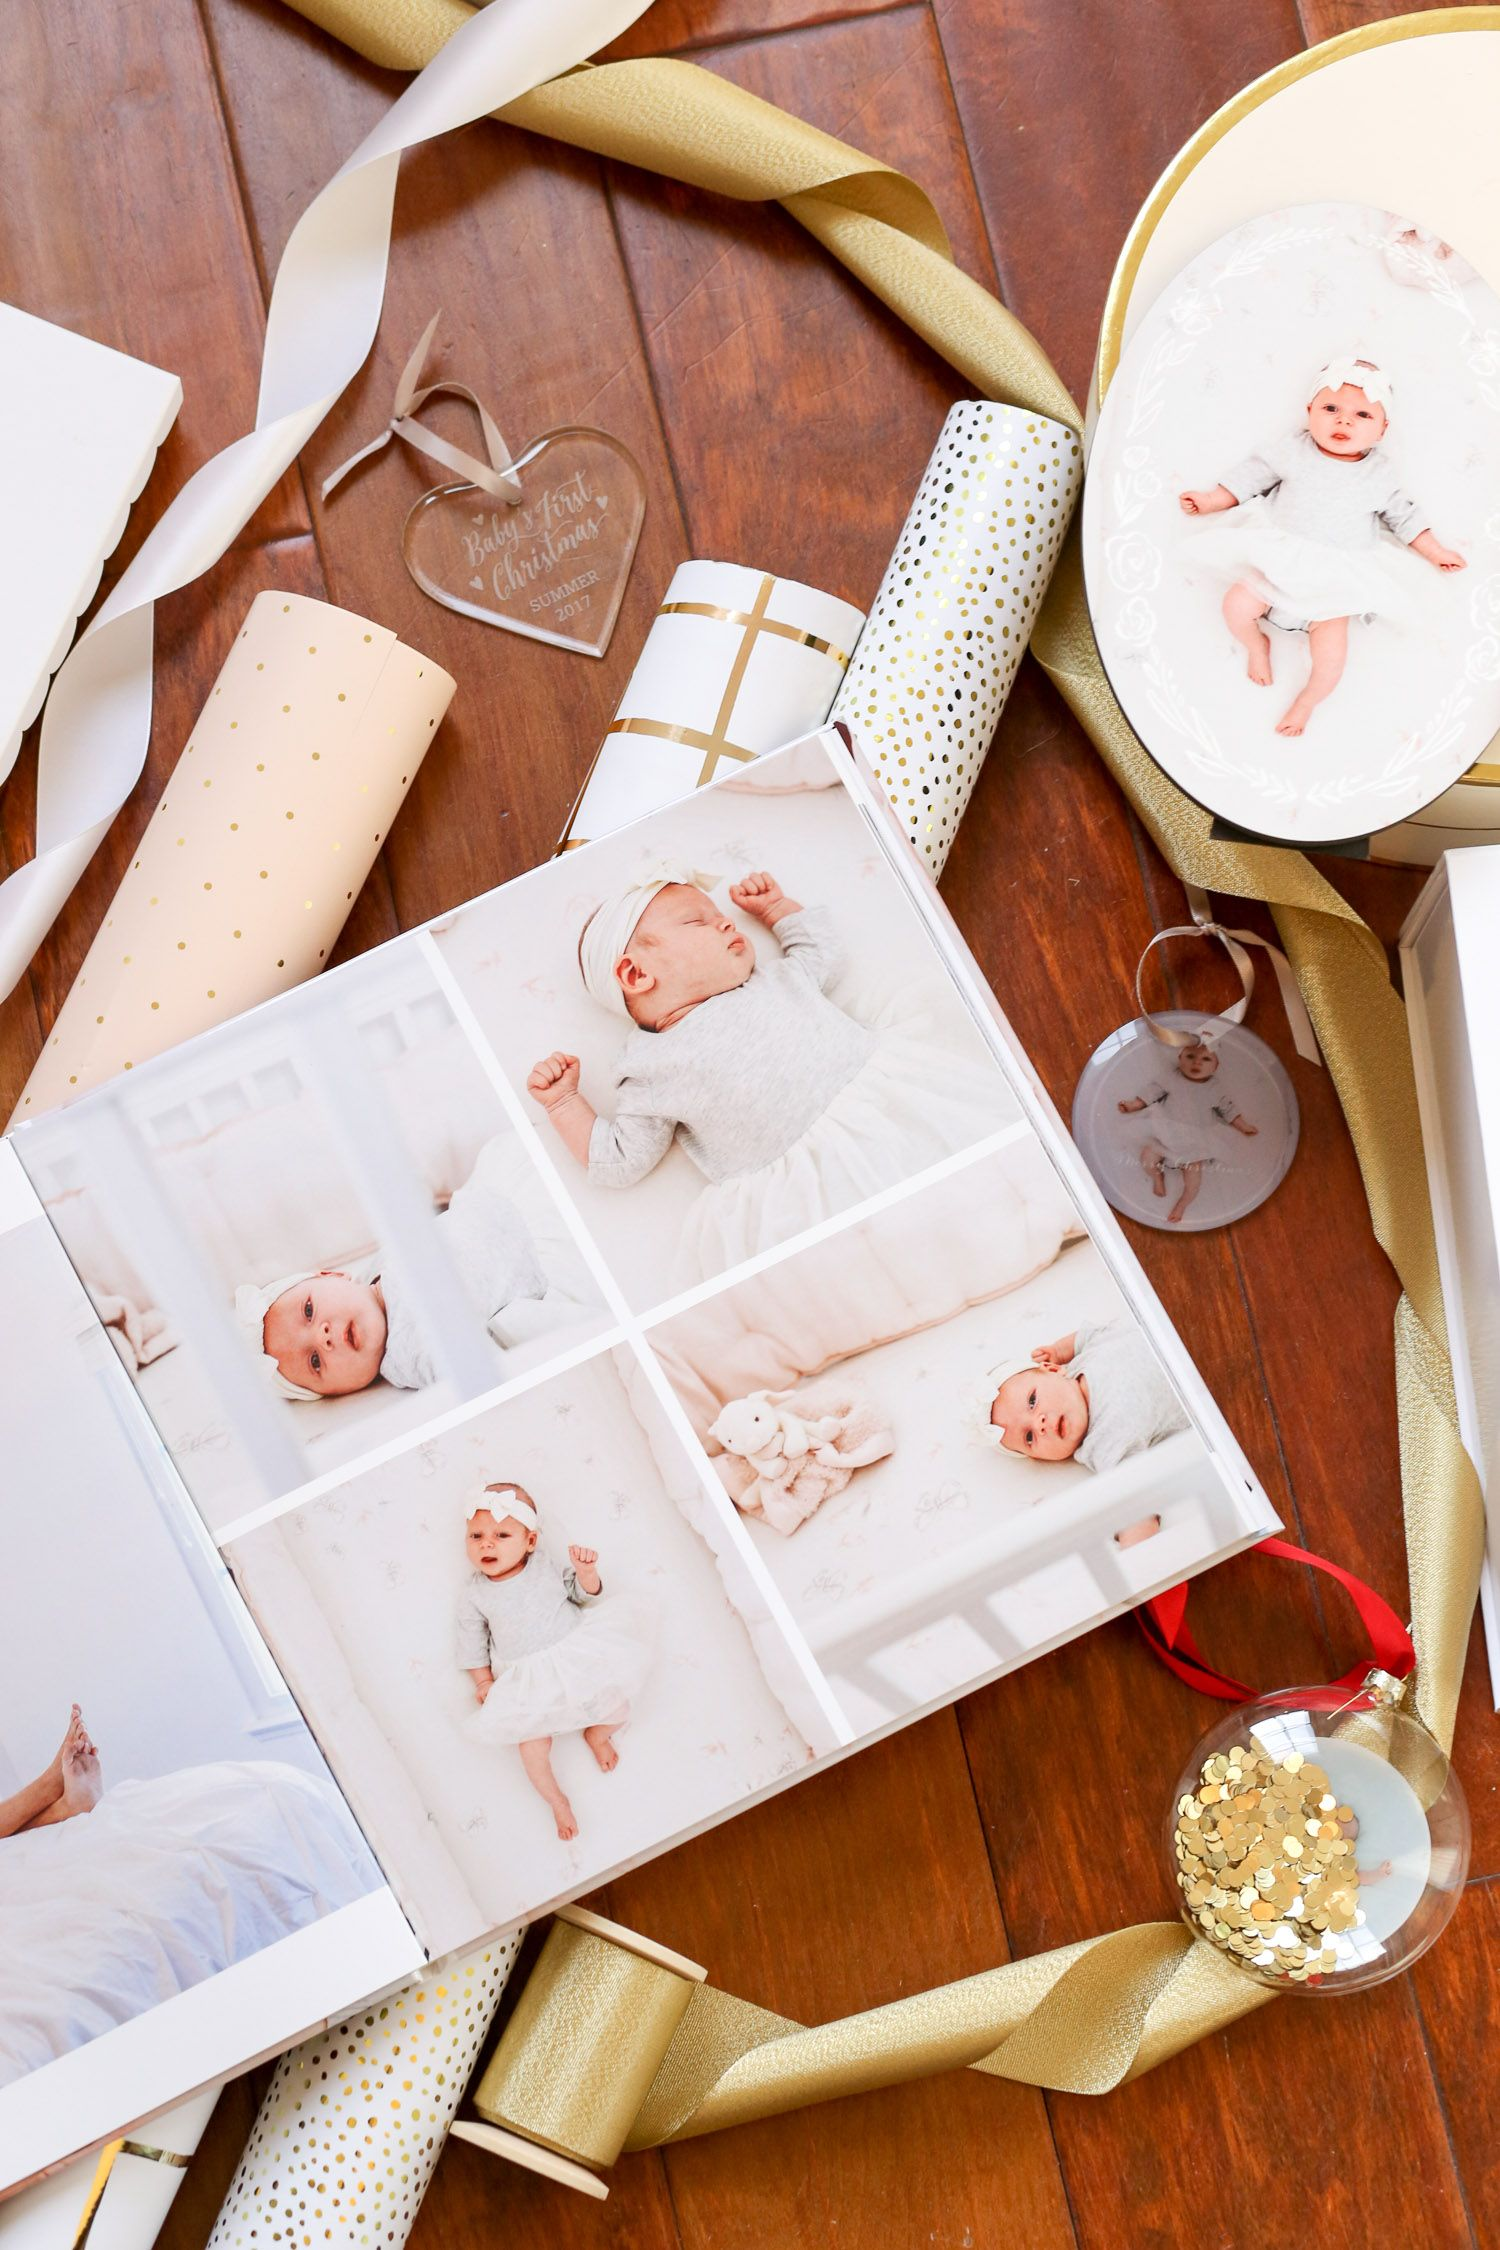 Personalized Christmas Gift Ideas from Shutterfly | Pinterest ...